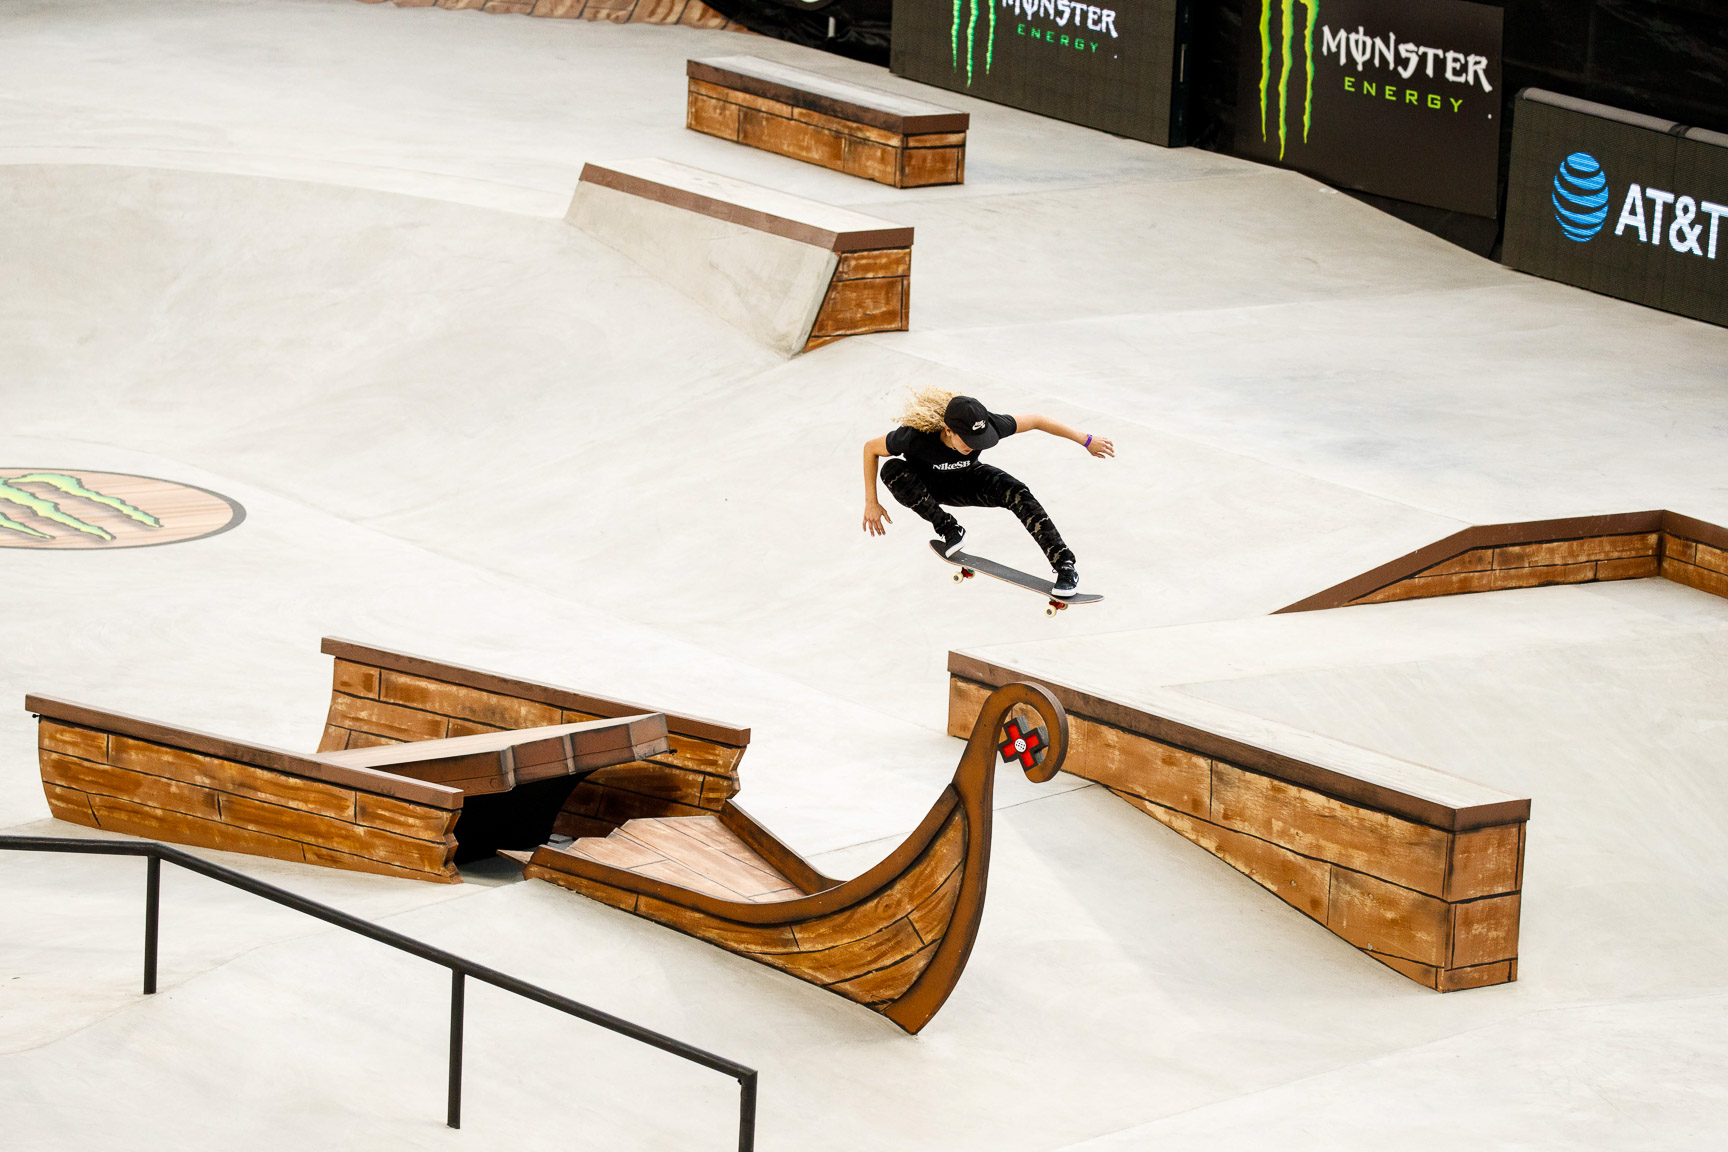 Gabi Mazetto has come up in skateboarding through the strong Brazilian scene. In October, she came in second behind X Games gold medalist Pamela Rosa in the Oi Stu Open. On Thursday morning, she earned herself a spot in the Women's Skateboard Street final, which takes place at 7:30 p.m. ET Friday.